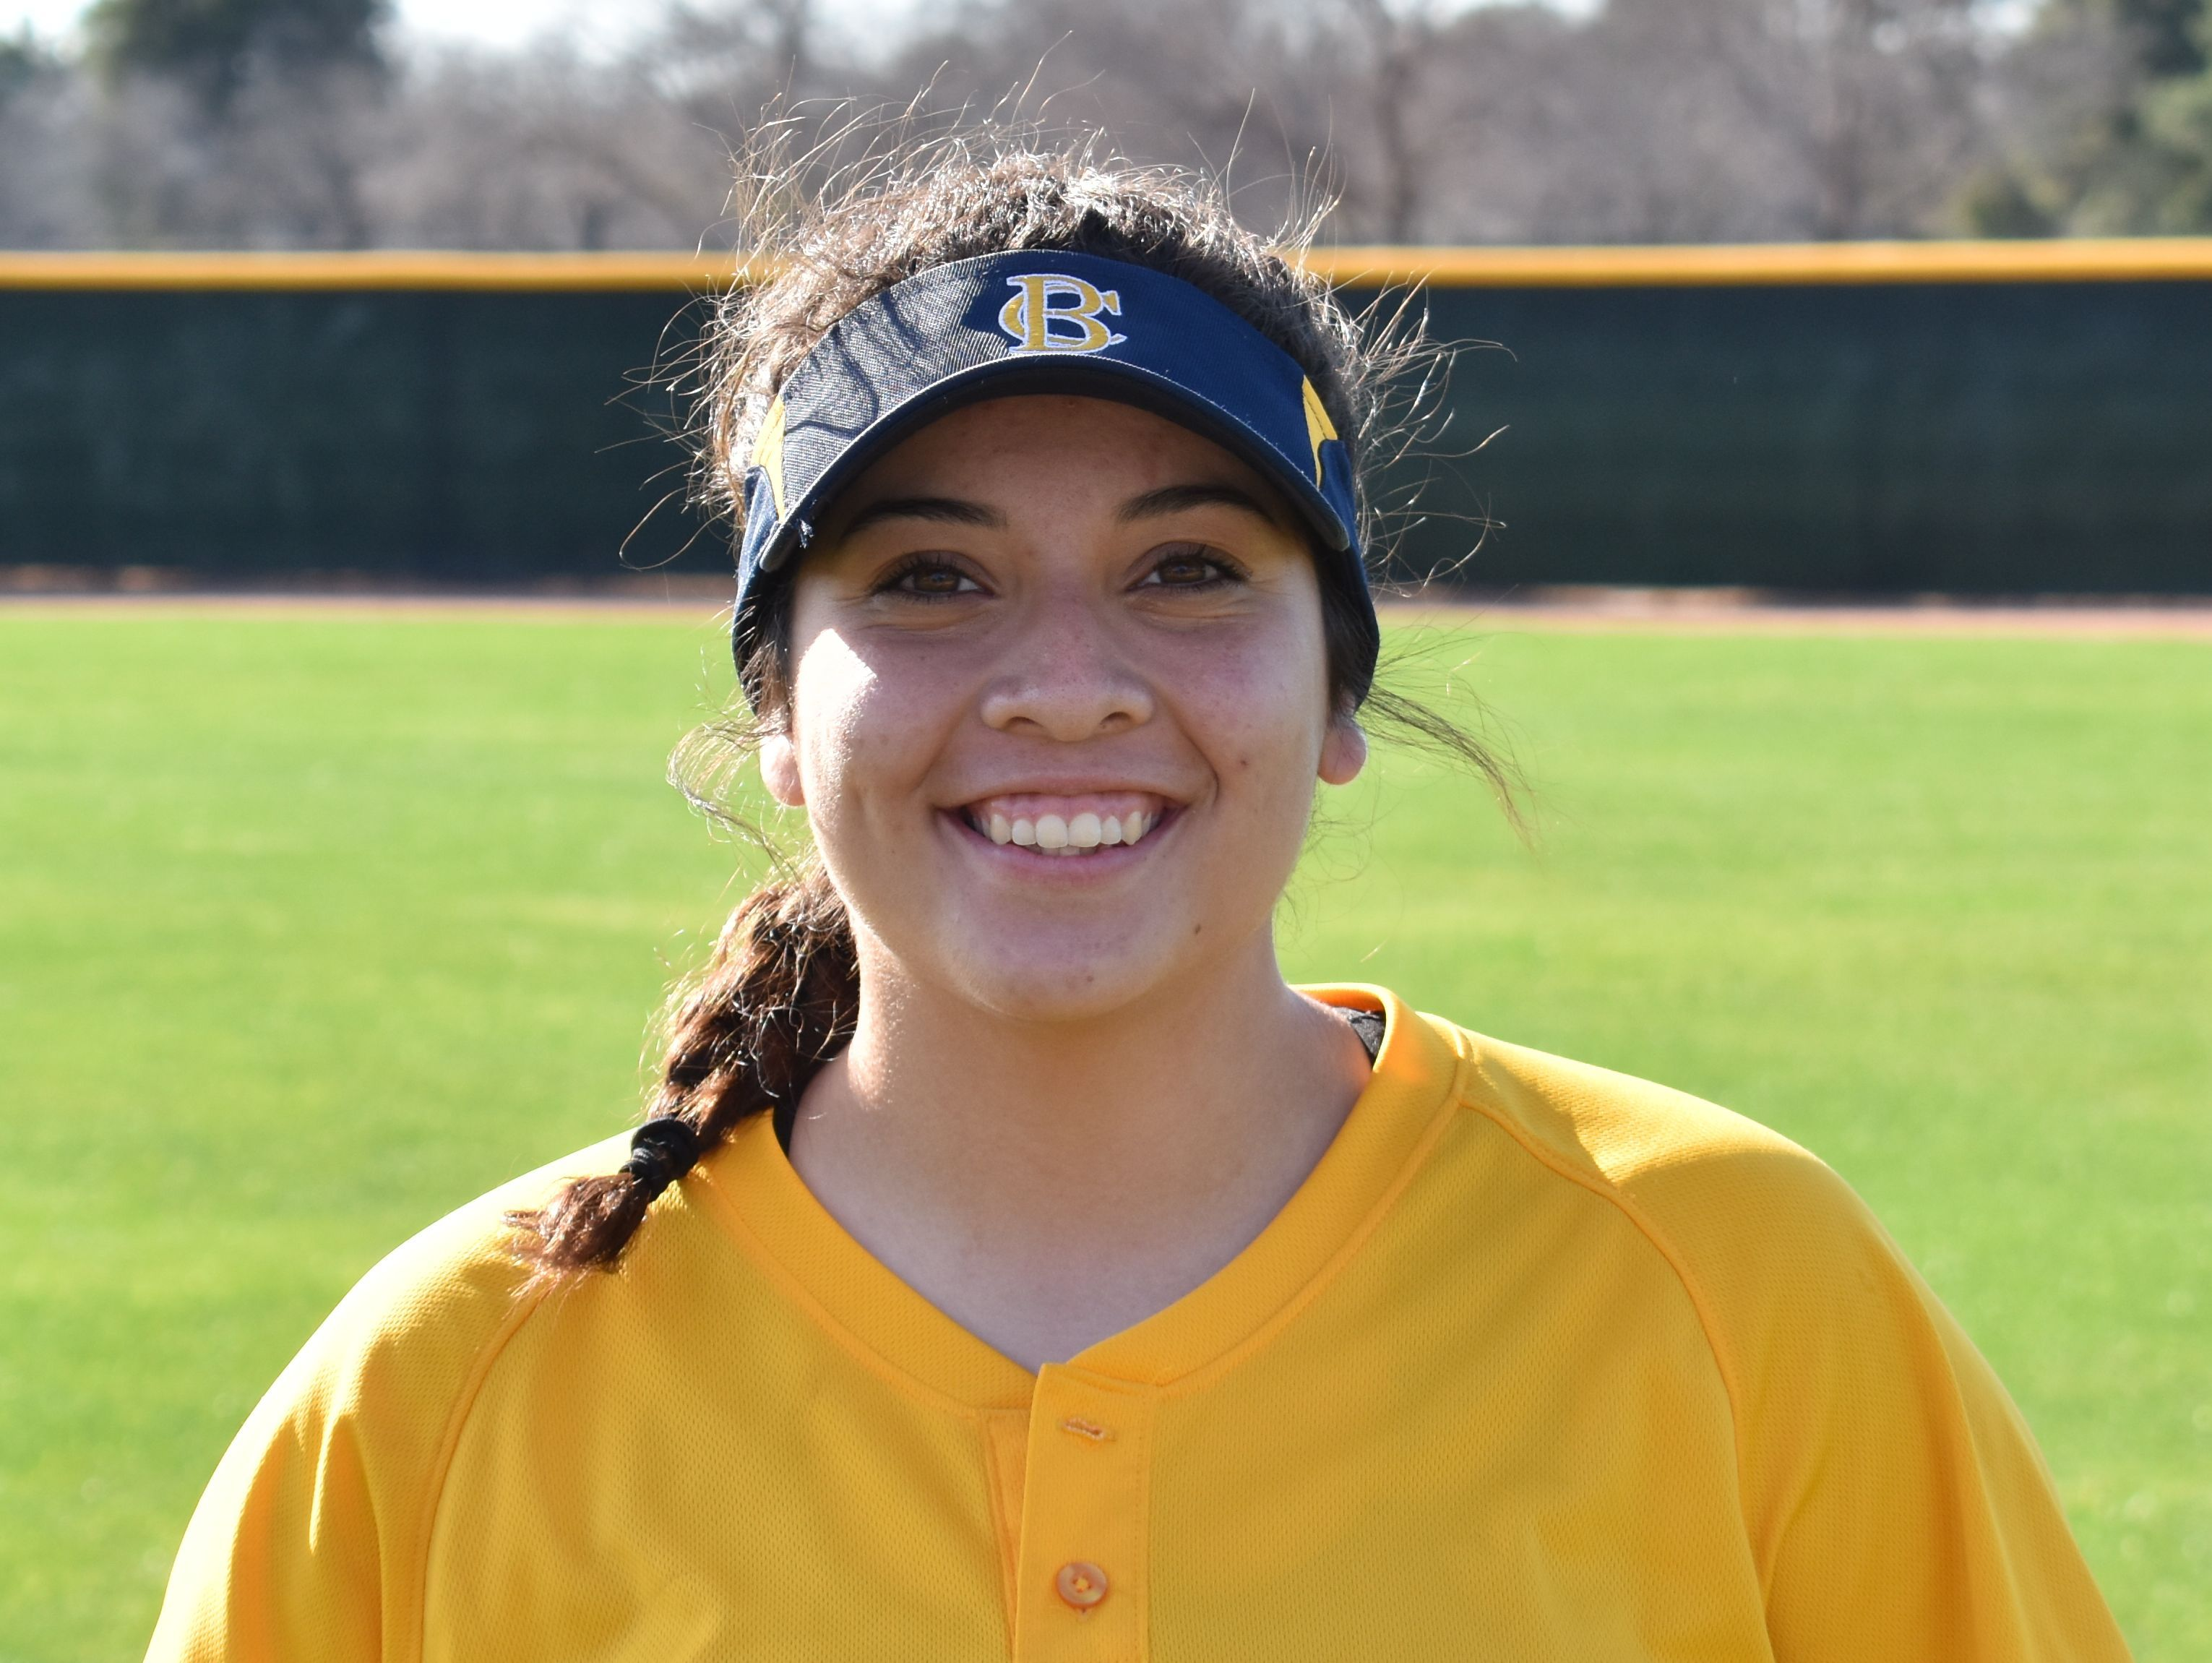 Emme Maciel, from Phoenix Bourgade Catholic, is the azcentral.com Sports Awards Female Athlete of the Week, presented by La-Z-Boy Furniture Galleries, for March 16-23.